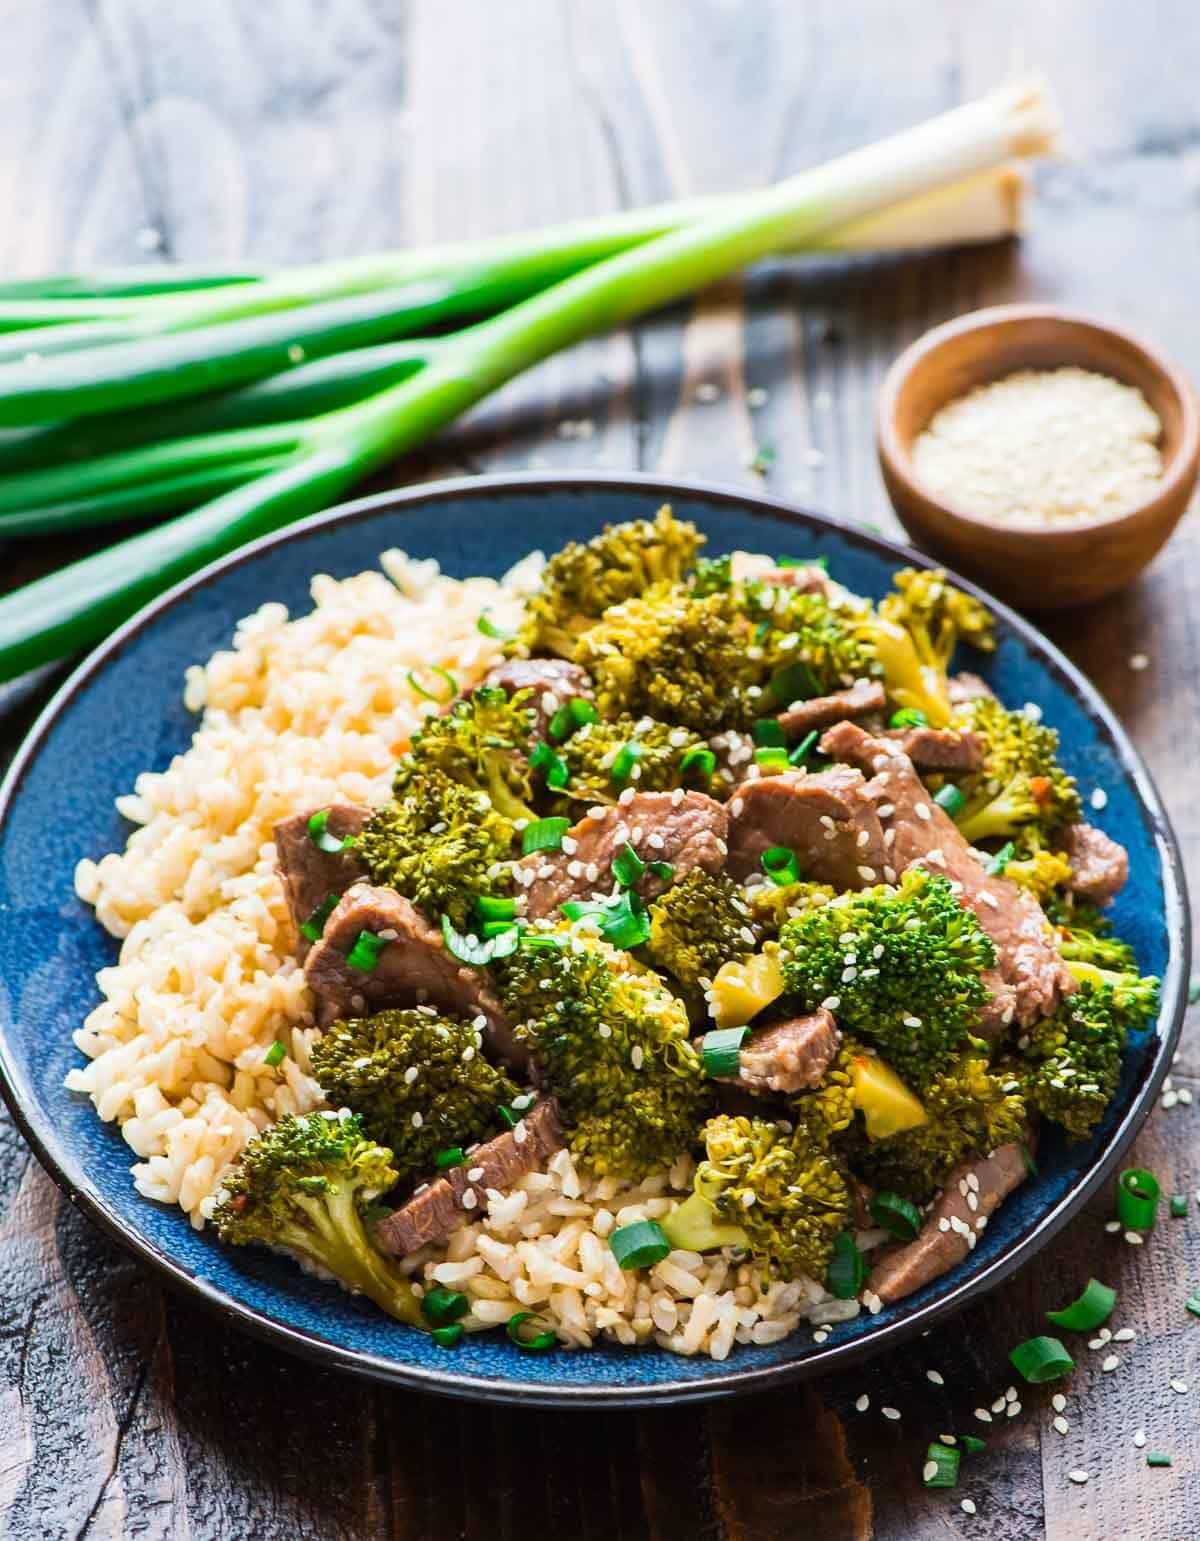 EASY Slow Cooker Beef and Broccoli Stir Fry. Healthy, low carb recipe. So much better than take out! Recipe at wellplated.com | @wellplated